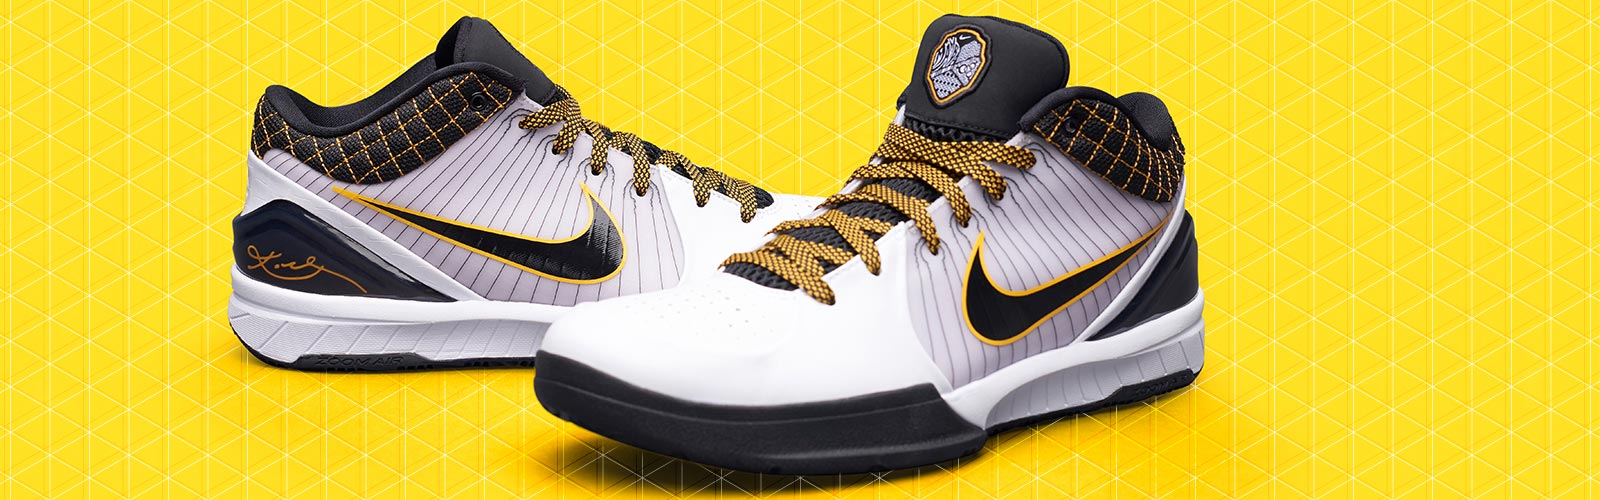 EB-052419-KobeProtro-1UP.jpg